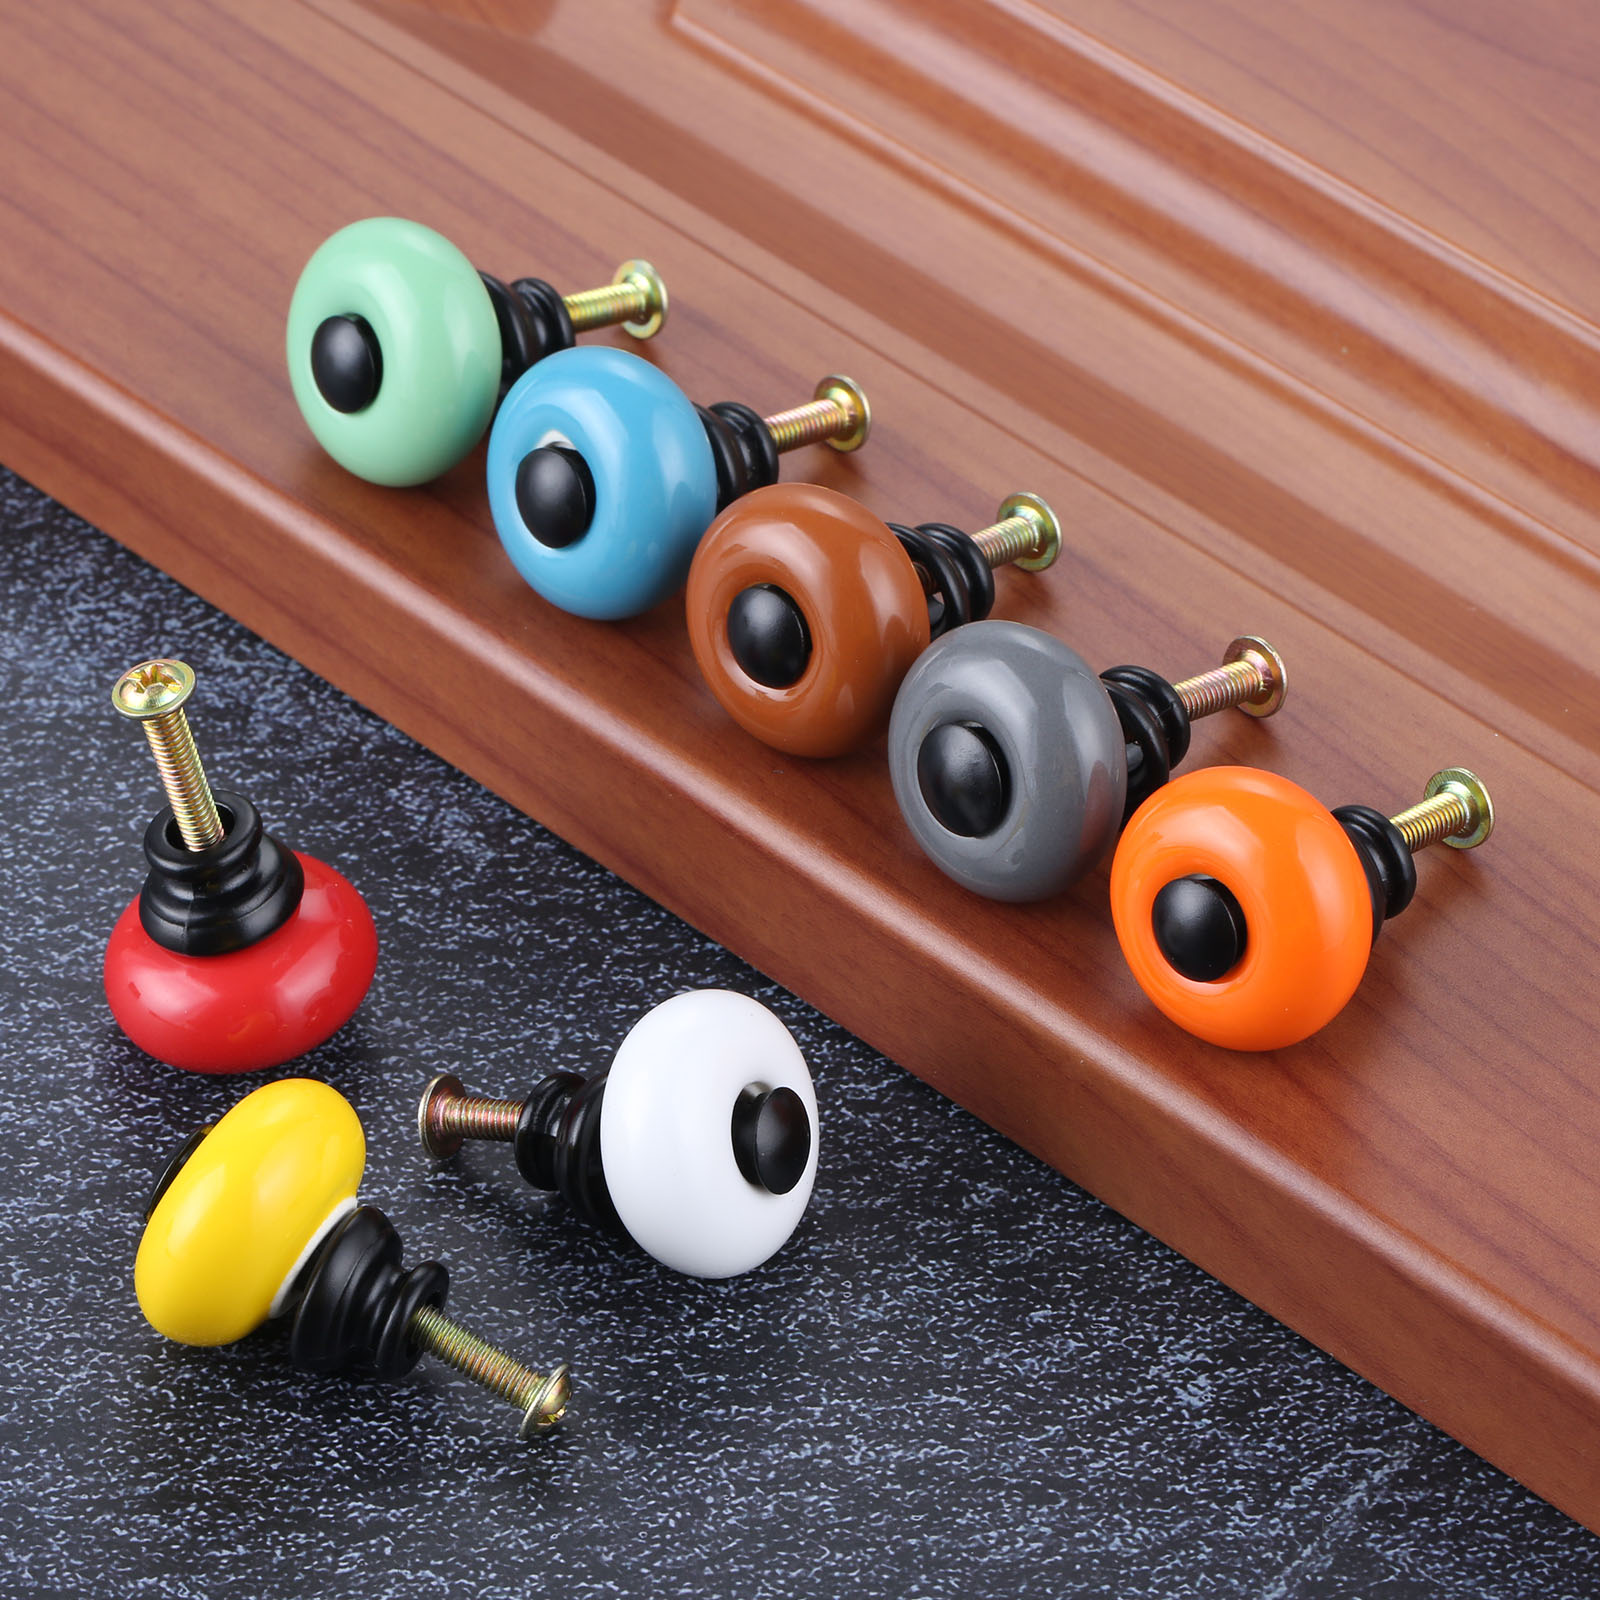 Купить с кэшбэком DRELD Colorful Furniture Handles Ceramic Cabinet Knobs and Handles Cupboard Drawer Kitchen Door Pull Handles Furniture Fittings